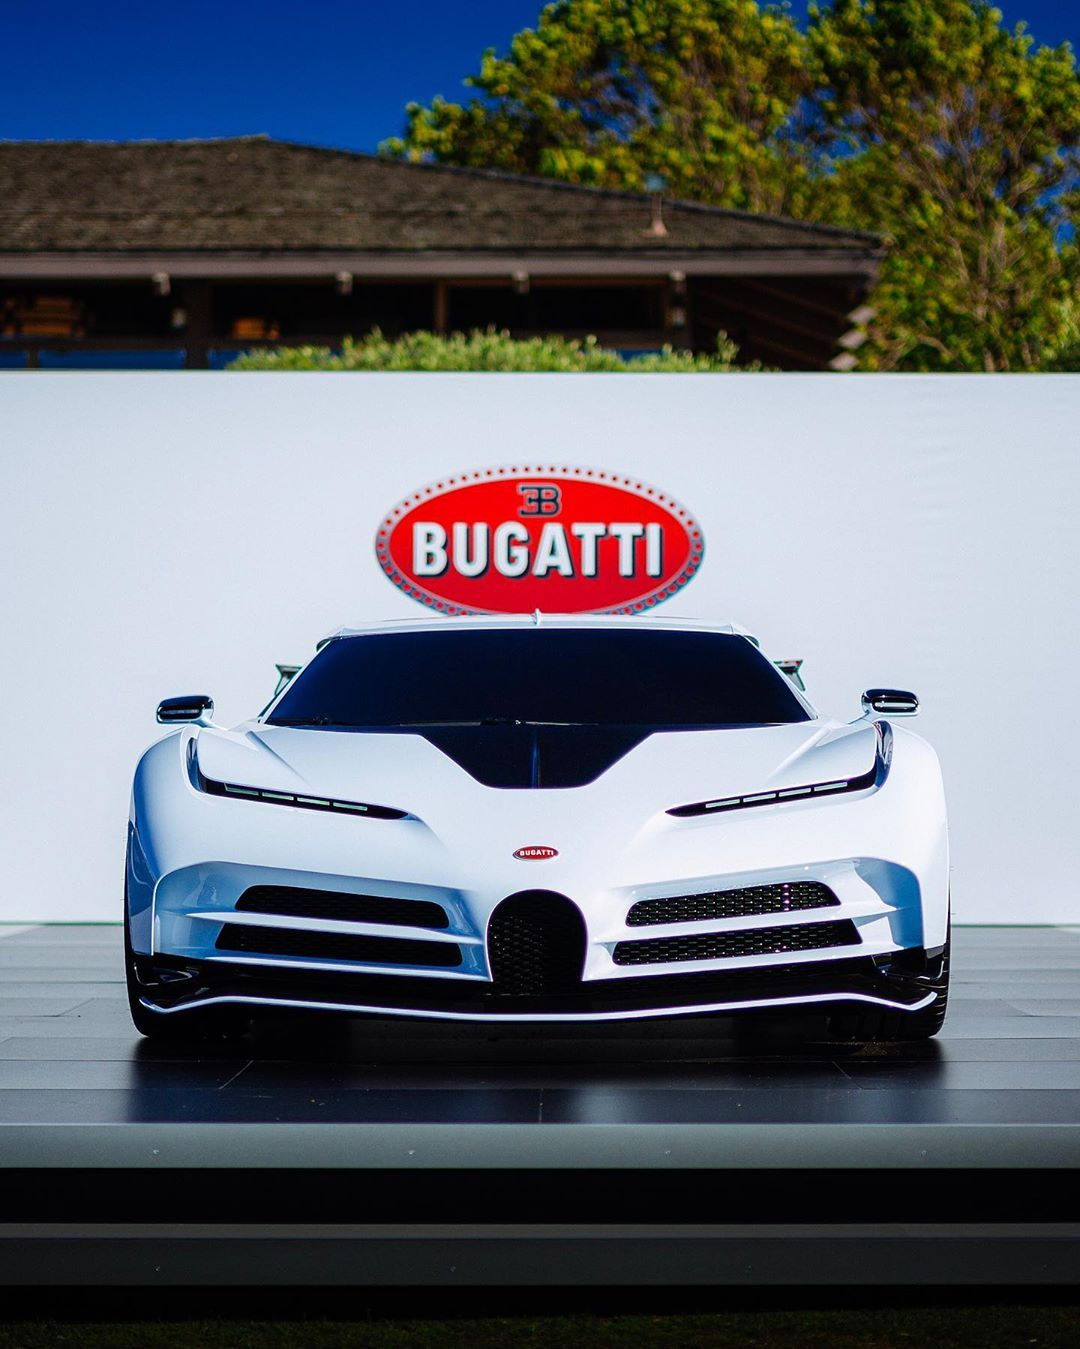 Bugatti Centodieci Reveal Today At Nbsp Nbsp Thequailevents Nbsp Nbsp What A Great Reveal What Do You Think Of T Bugatti Bugatti Centodieci Bugatti Cars